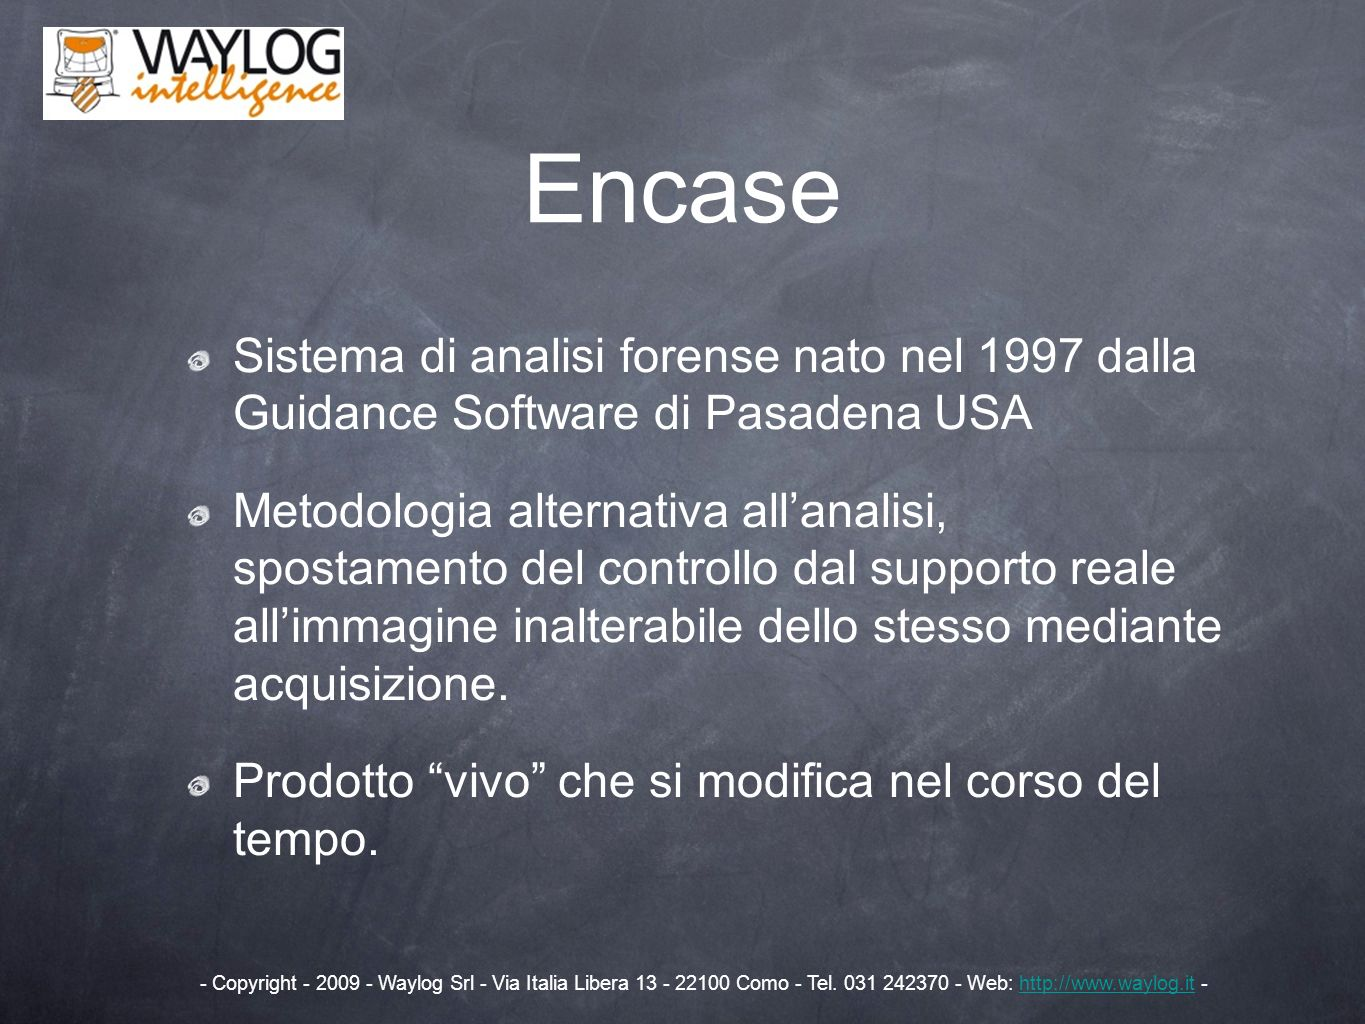 Encase Sistema di analisi forense nato nel 1997 dalla Guidance Software di Pasadena USA.